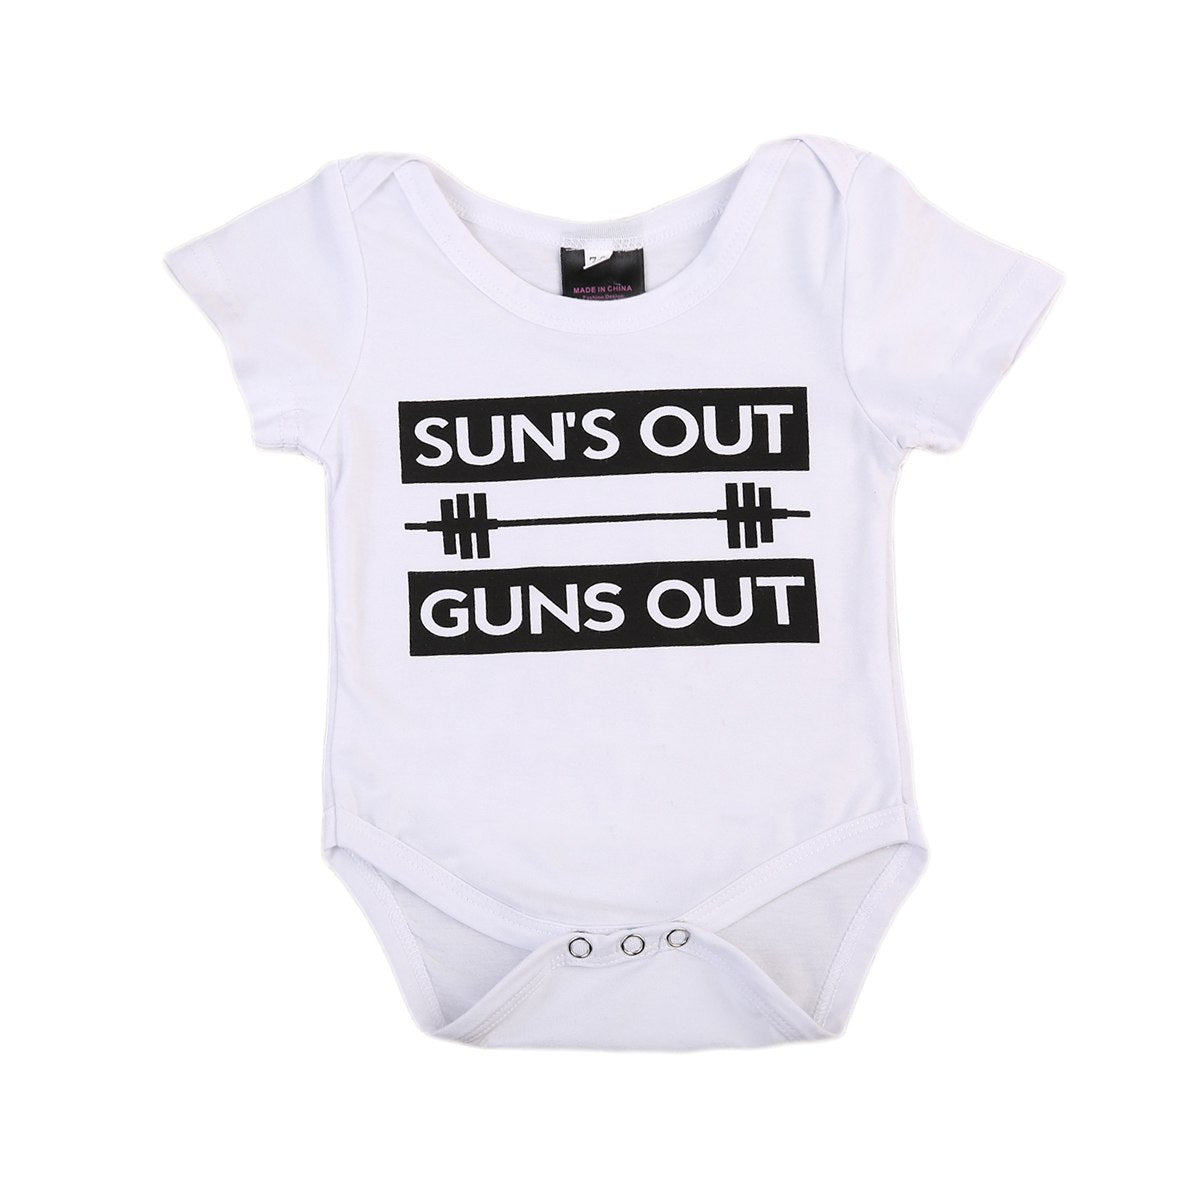 Newborn Infant Baby Boy Girl Clothing Tops Bodysuit Short Sleeve Cotton Cute Jumpsuit Sunsuit Outfits Clothes-eosegal